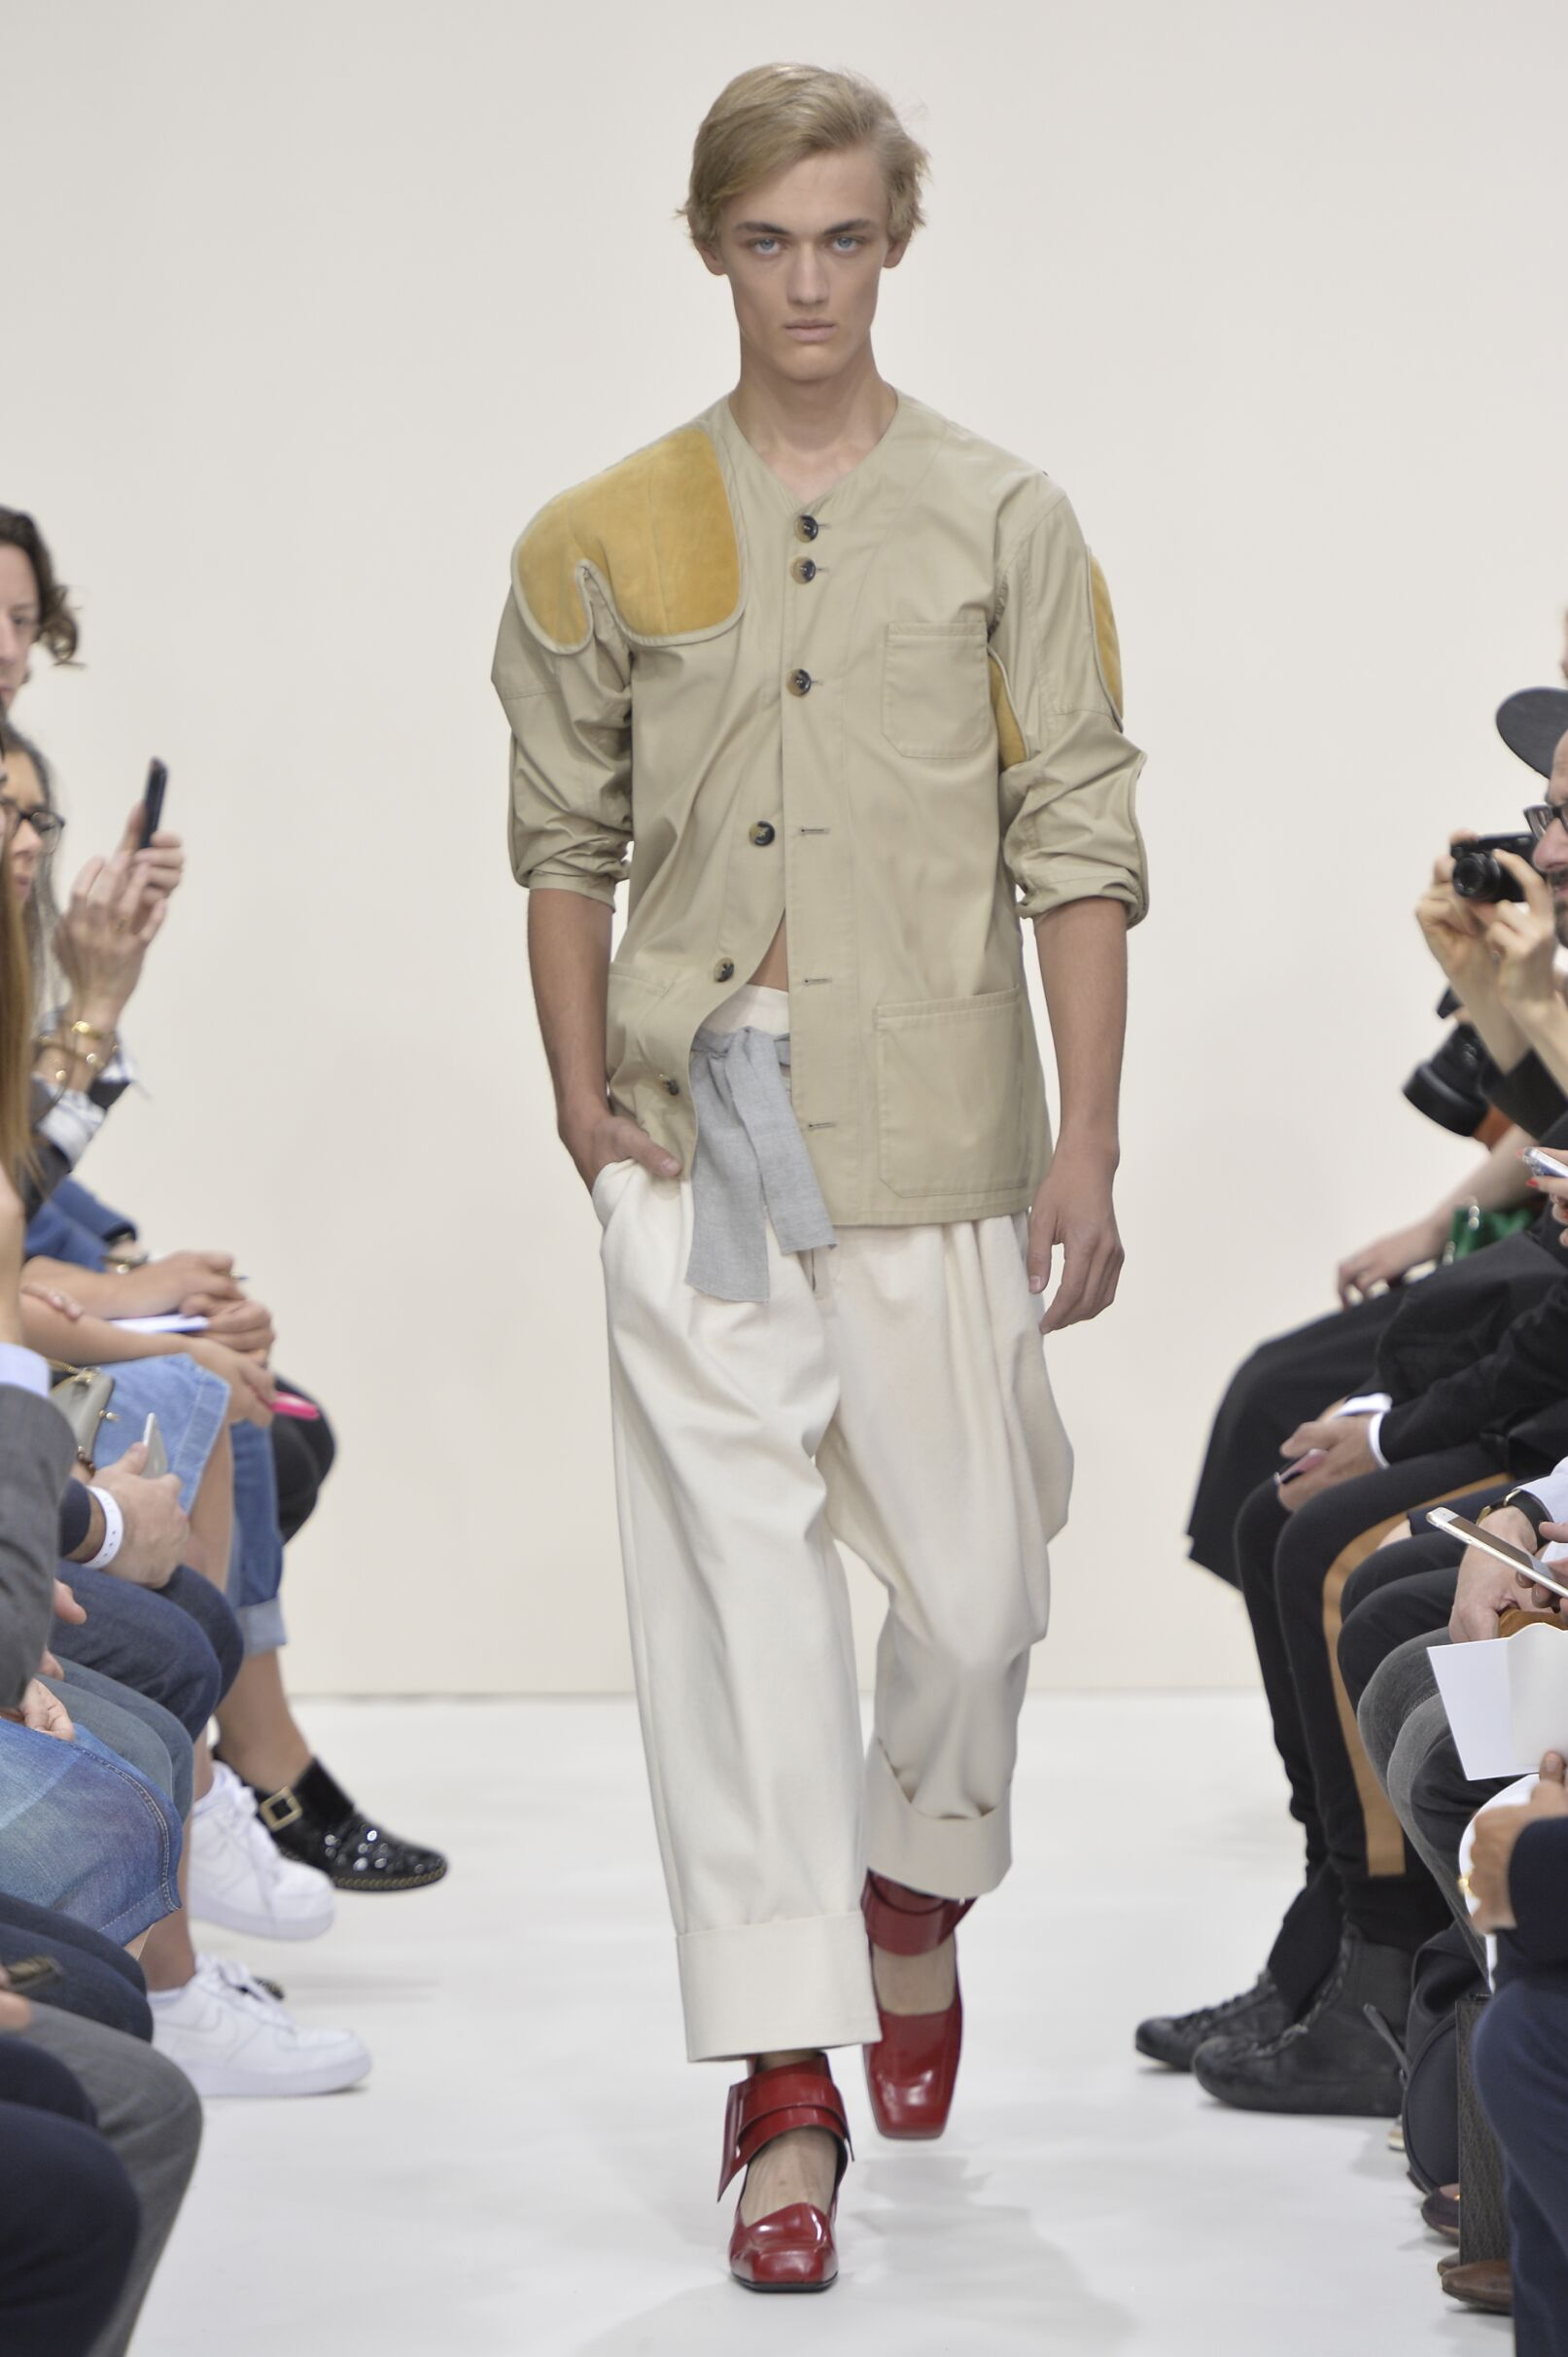 J.W. Anderson Collection London Fashion Week Menswear